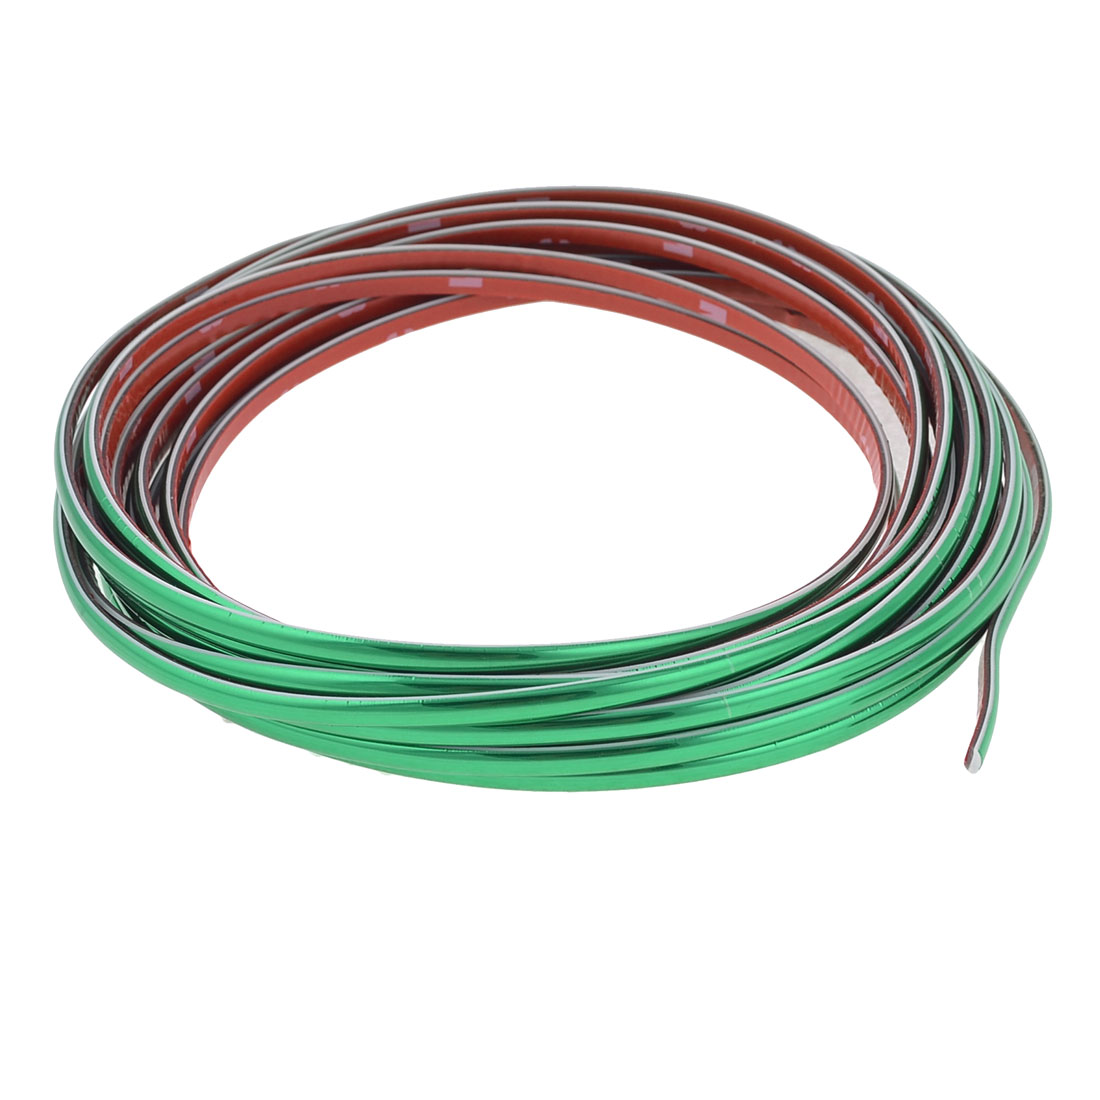 6M x 4mm Green Flexible Plastic Moulding Trim Strip for Auto Car